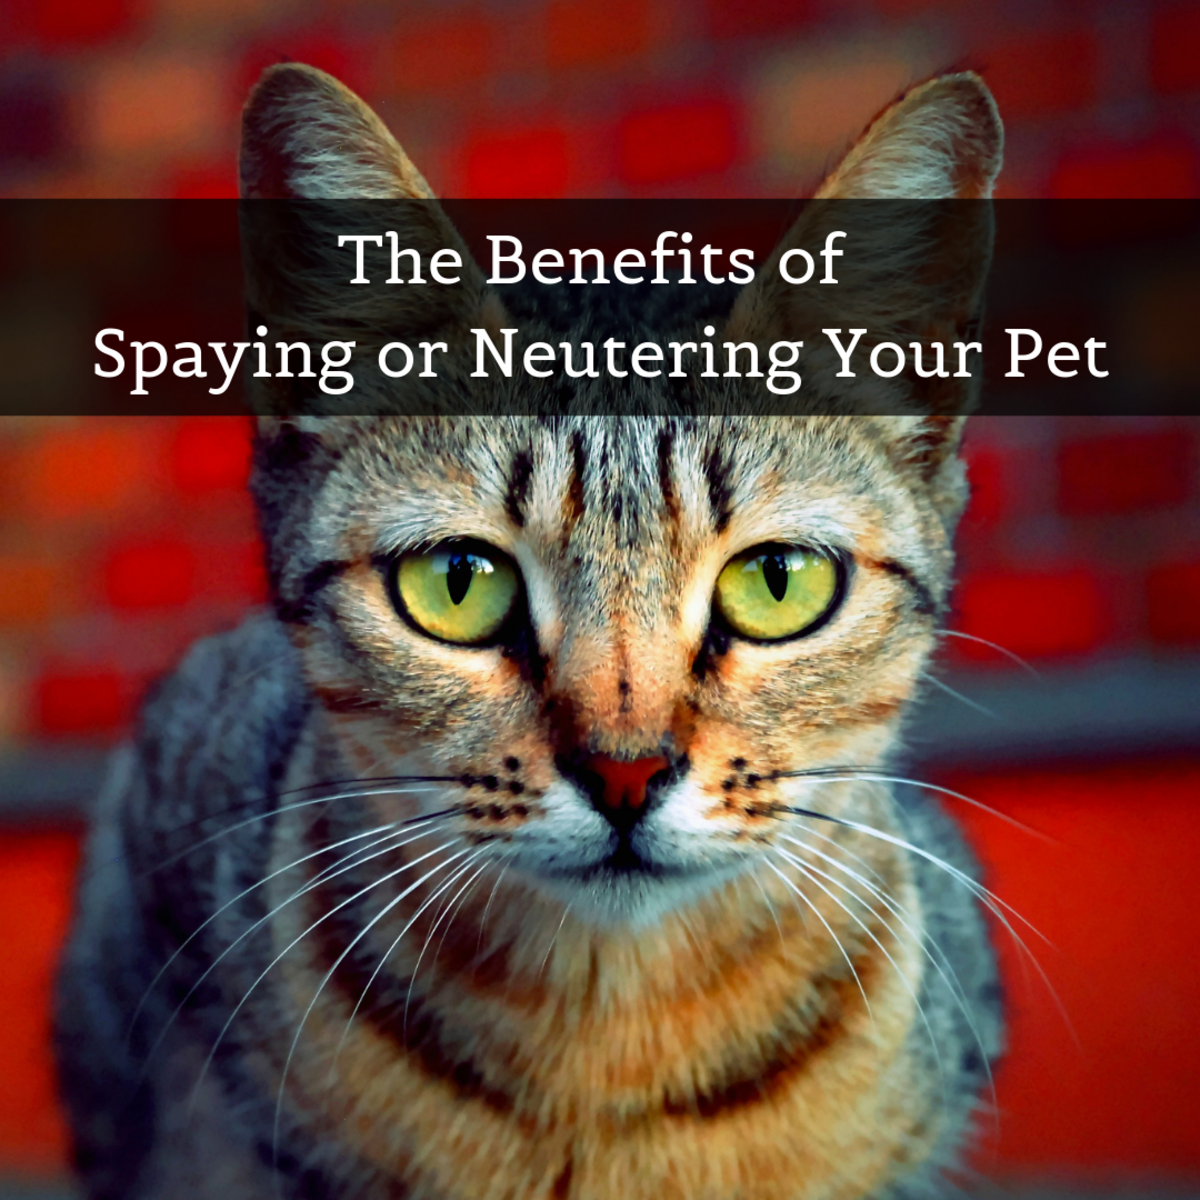 Spaying and Neutering Saves Lives